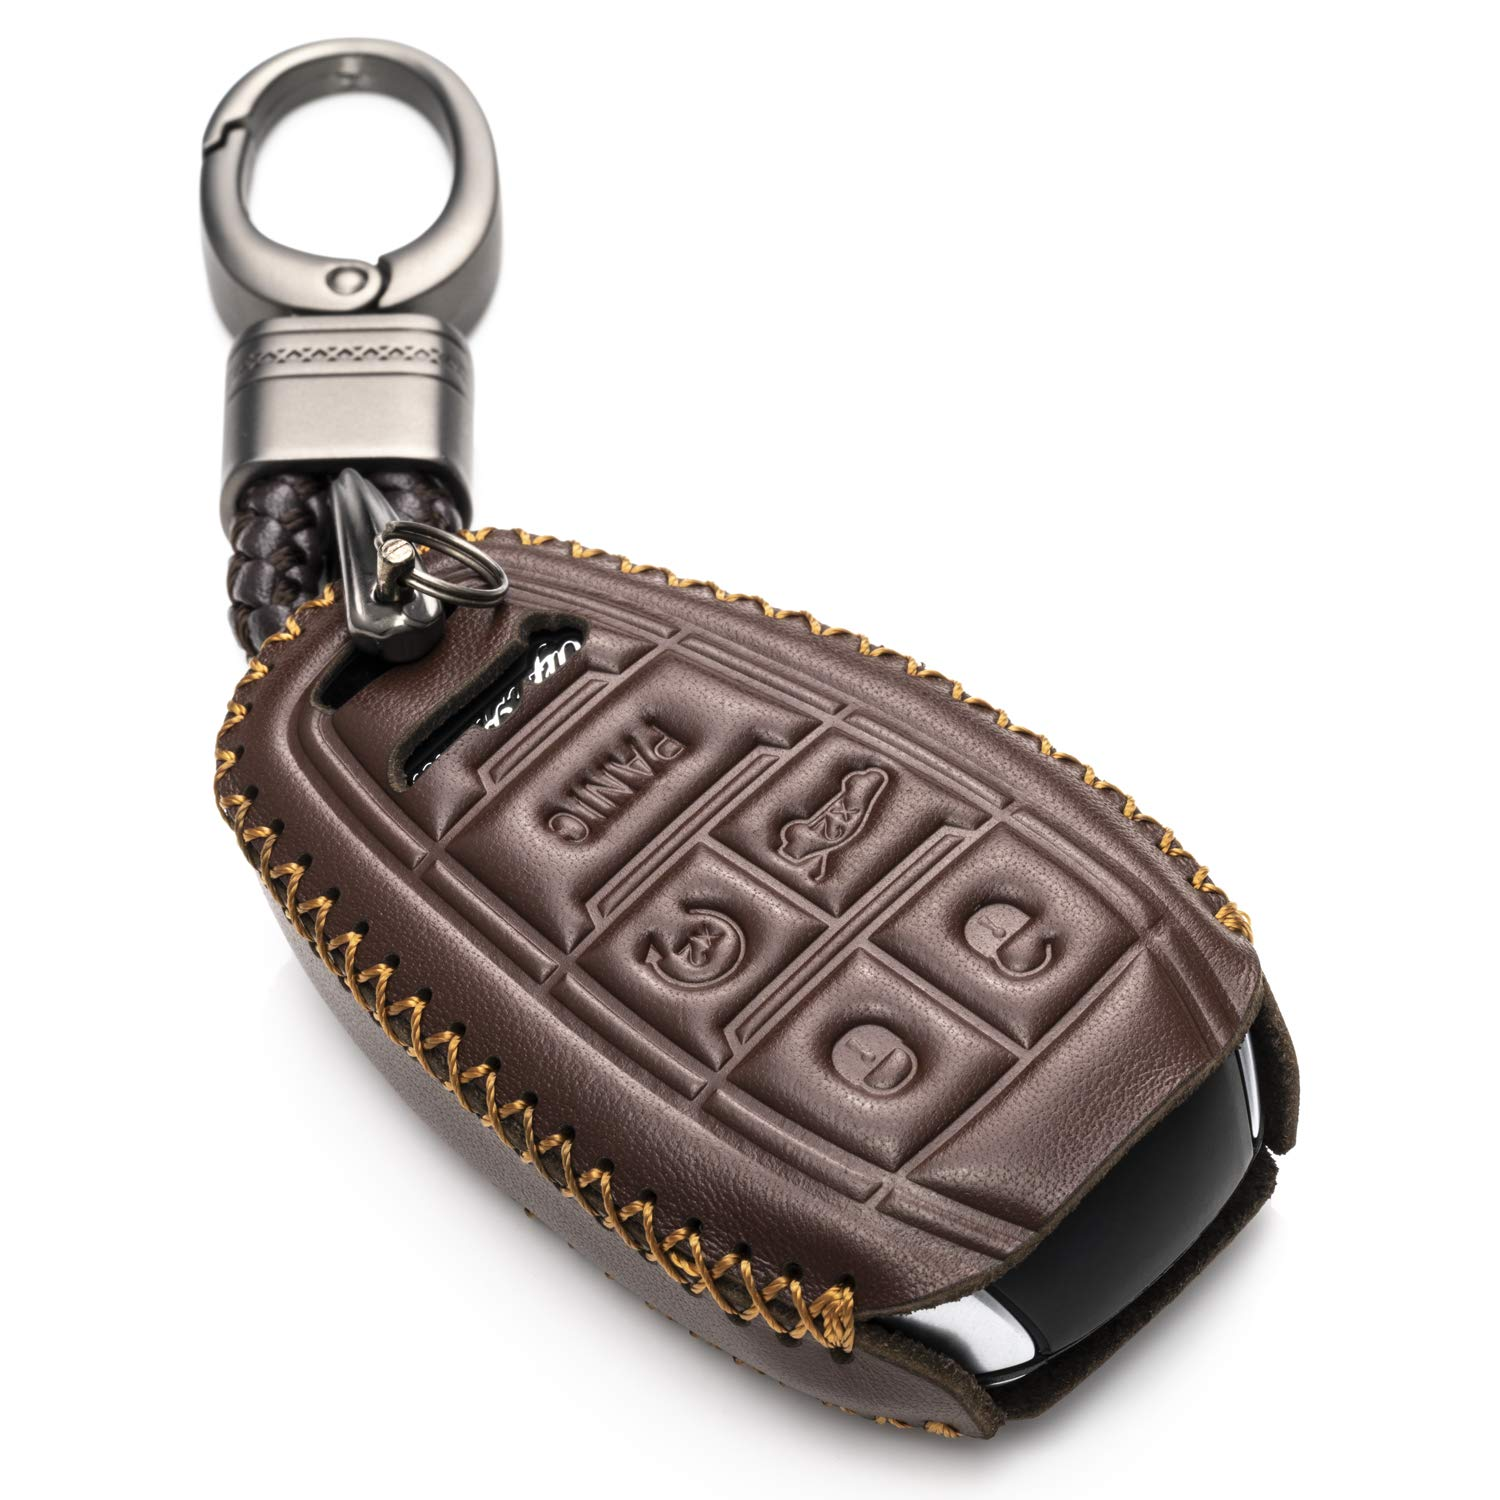 Vitodeco Genuine Leather Smart Key Fob Case Cover Protector with Leather Key Chain for 2017-2019 Alfa Romeo Giulia, Stelvio, 4C Spider (5-Button, Brown)